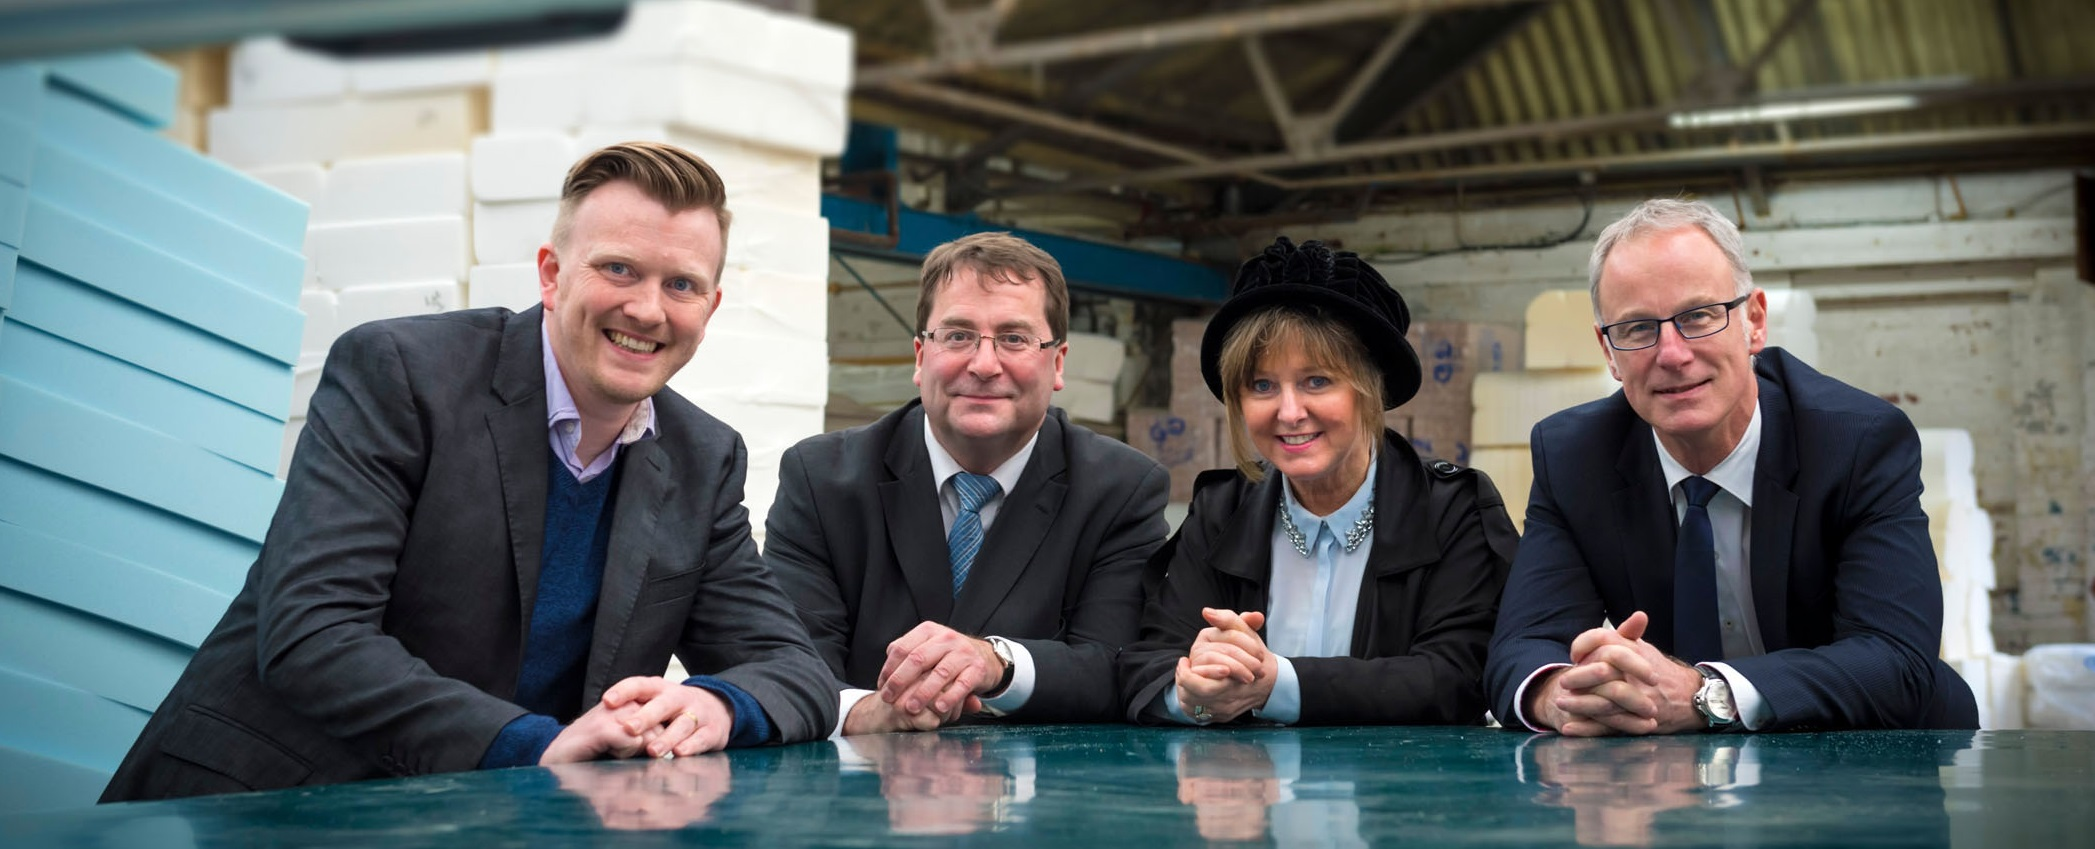 Image: £700,000 investment at GNG Foam Converters brings new orders and job opportunities to Rochdale